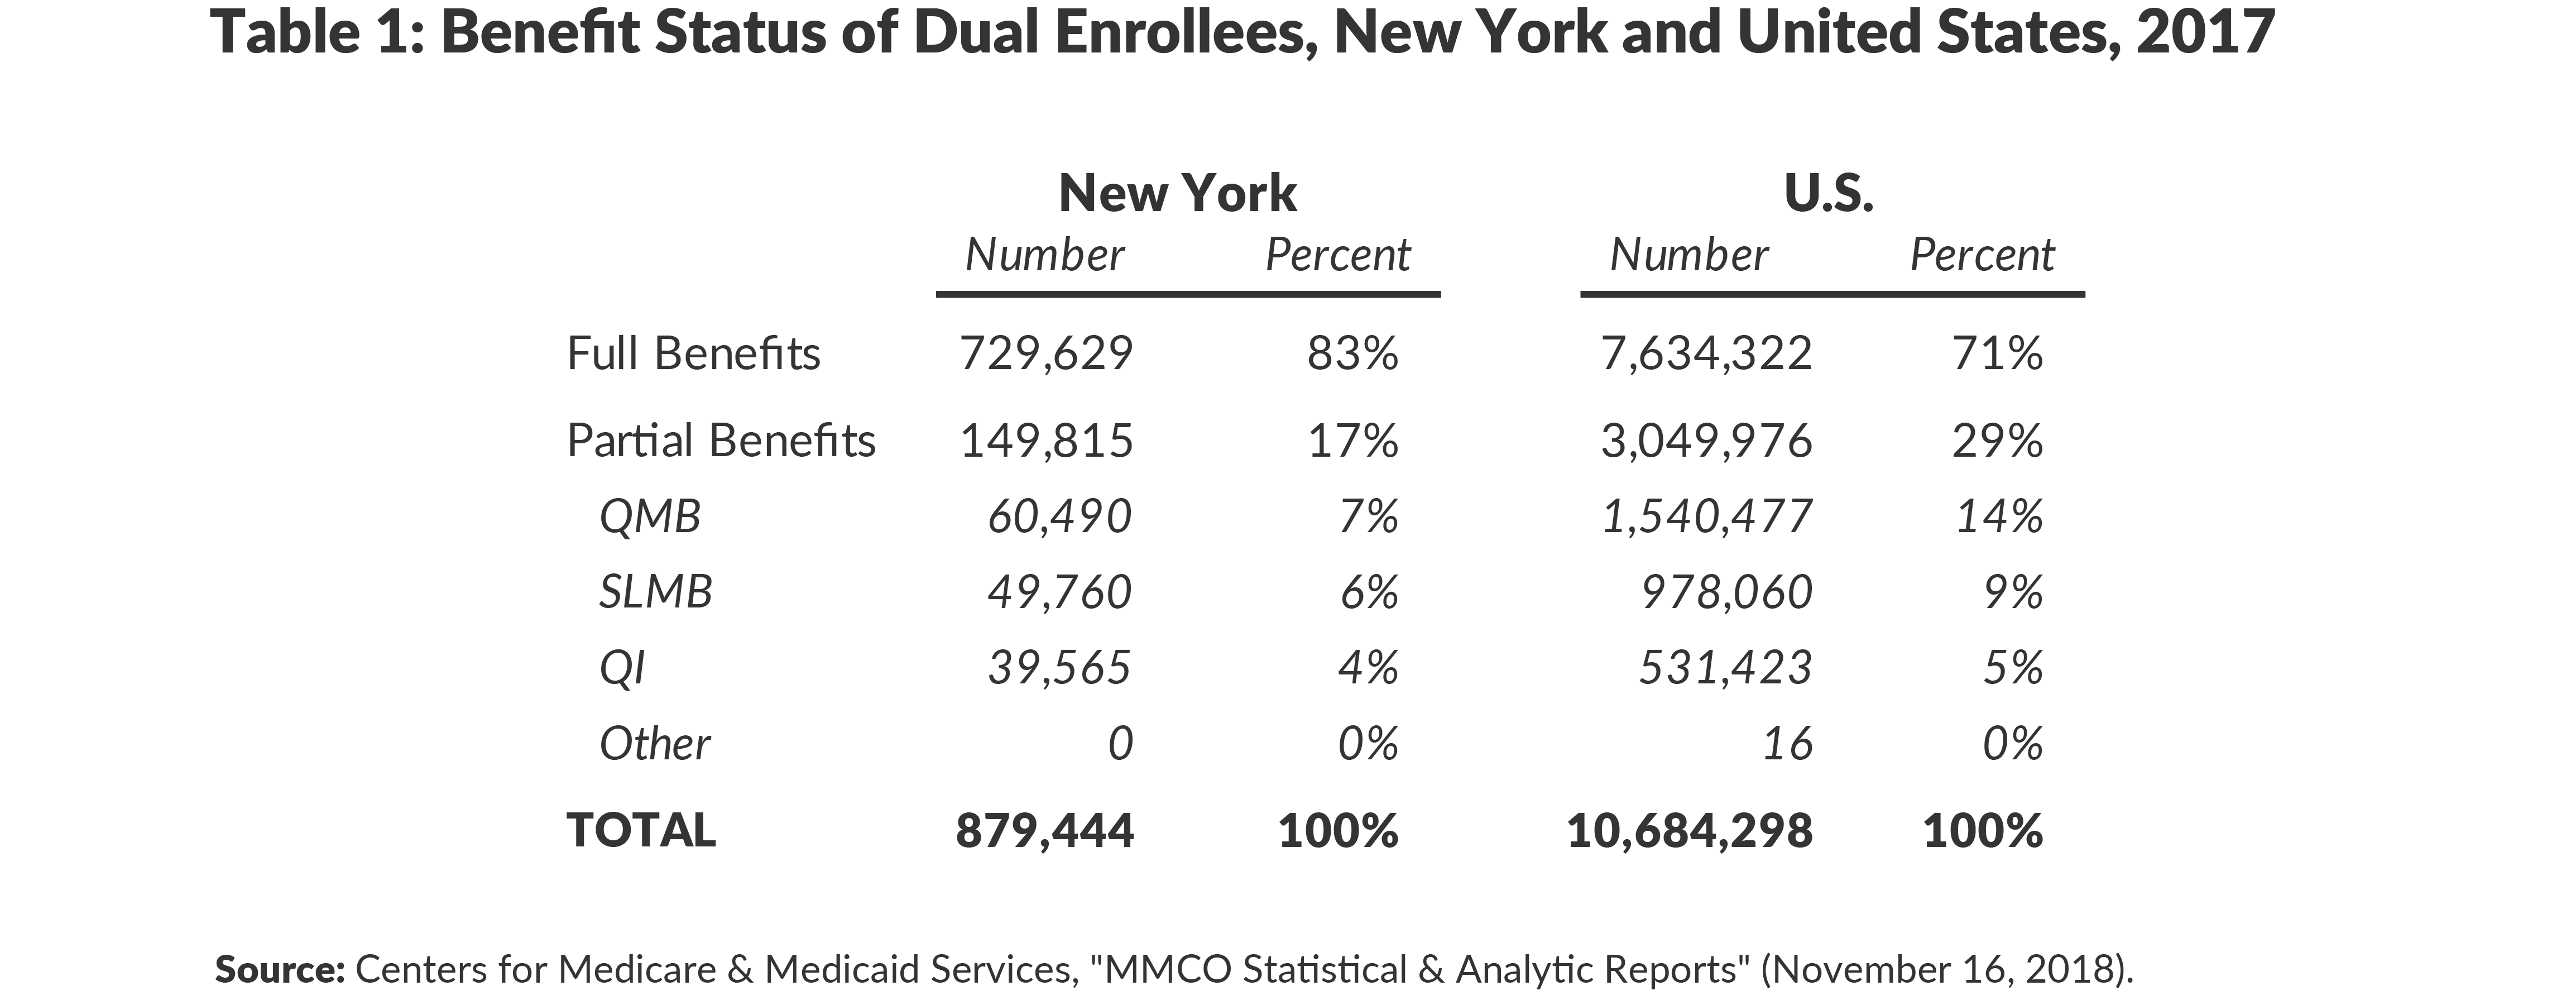 Table 1: Benefit Status of Dual Enrollees, New York and United States, 2017